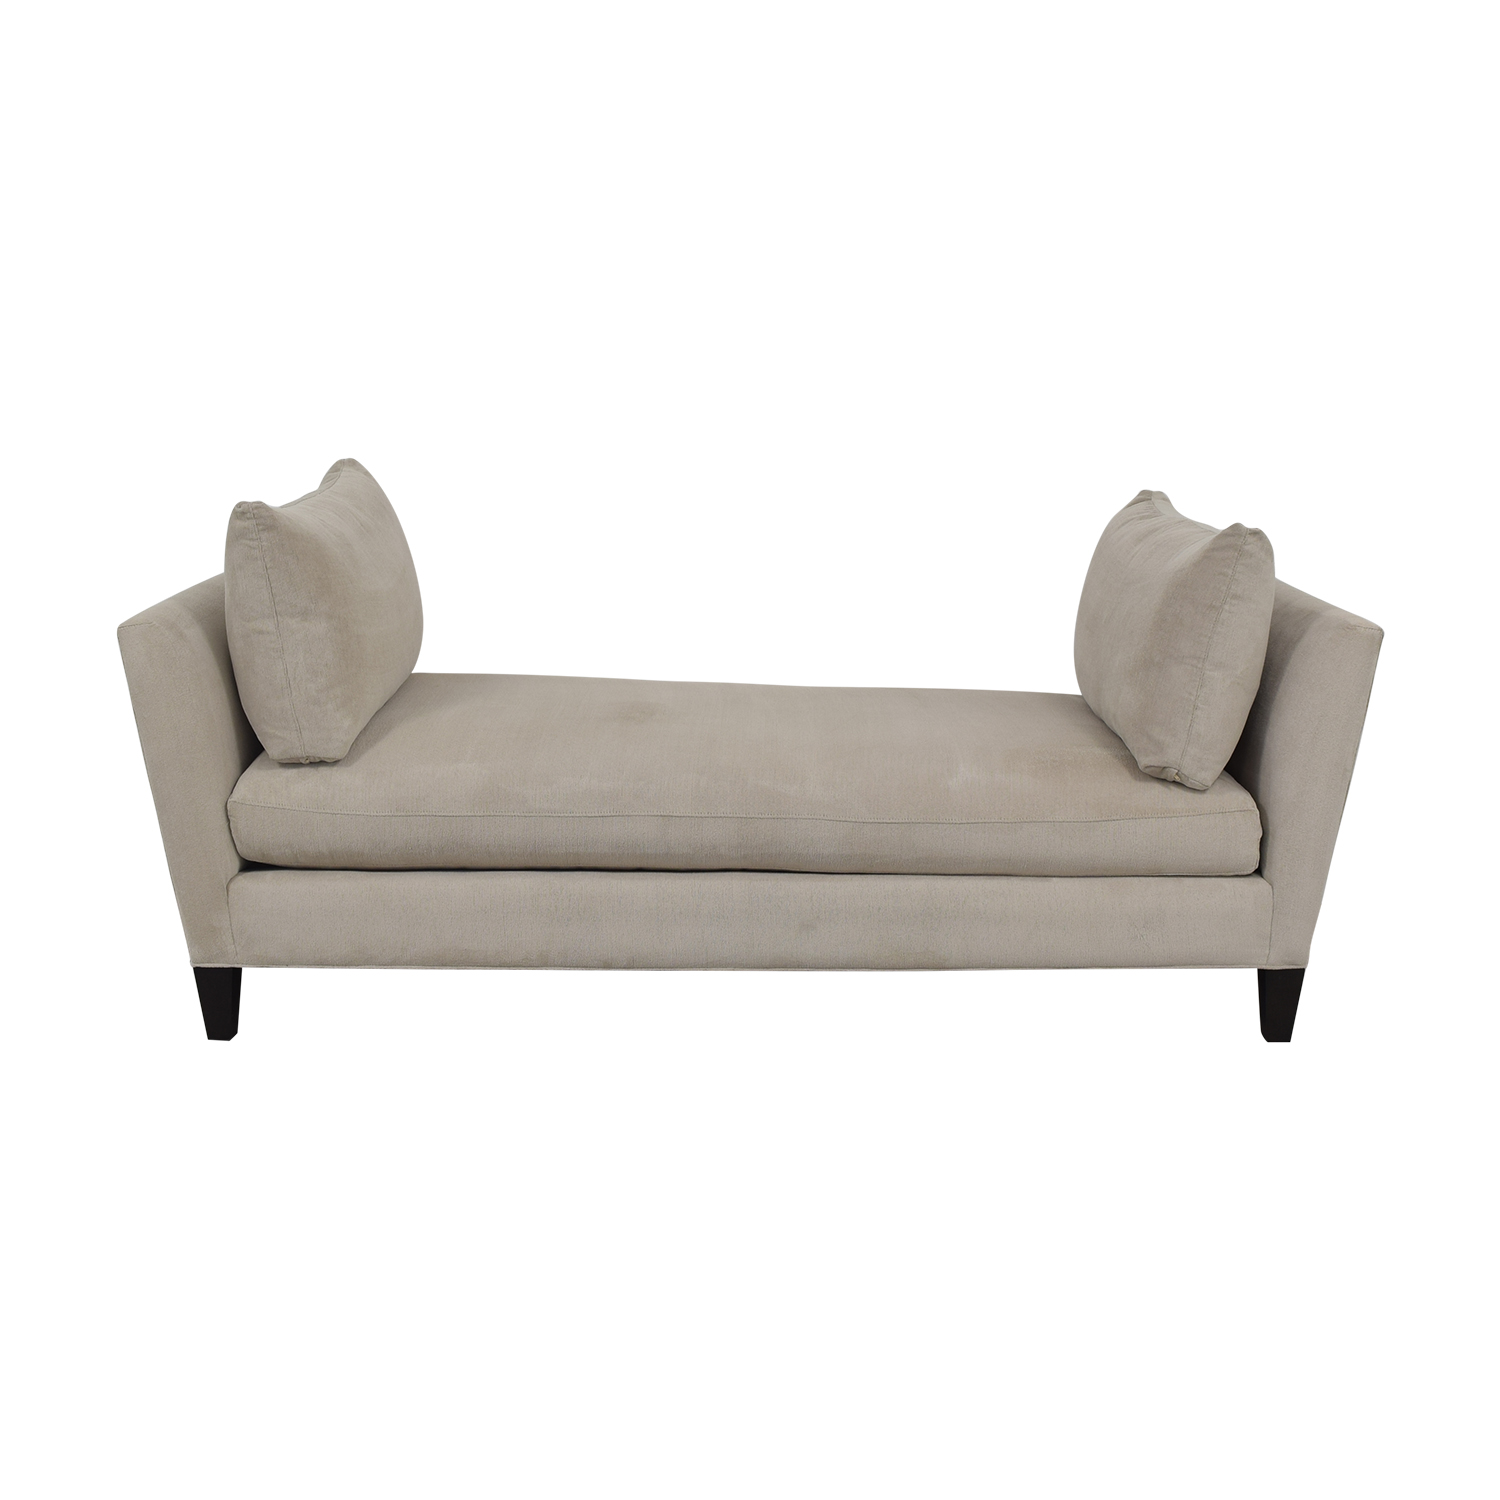 shop Crate & Barrel Marlowe Daybed Crate & Barrel Sofas